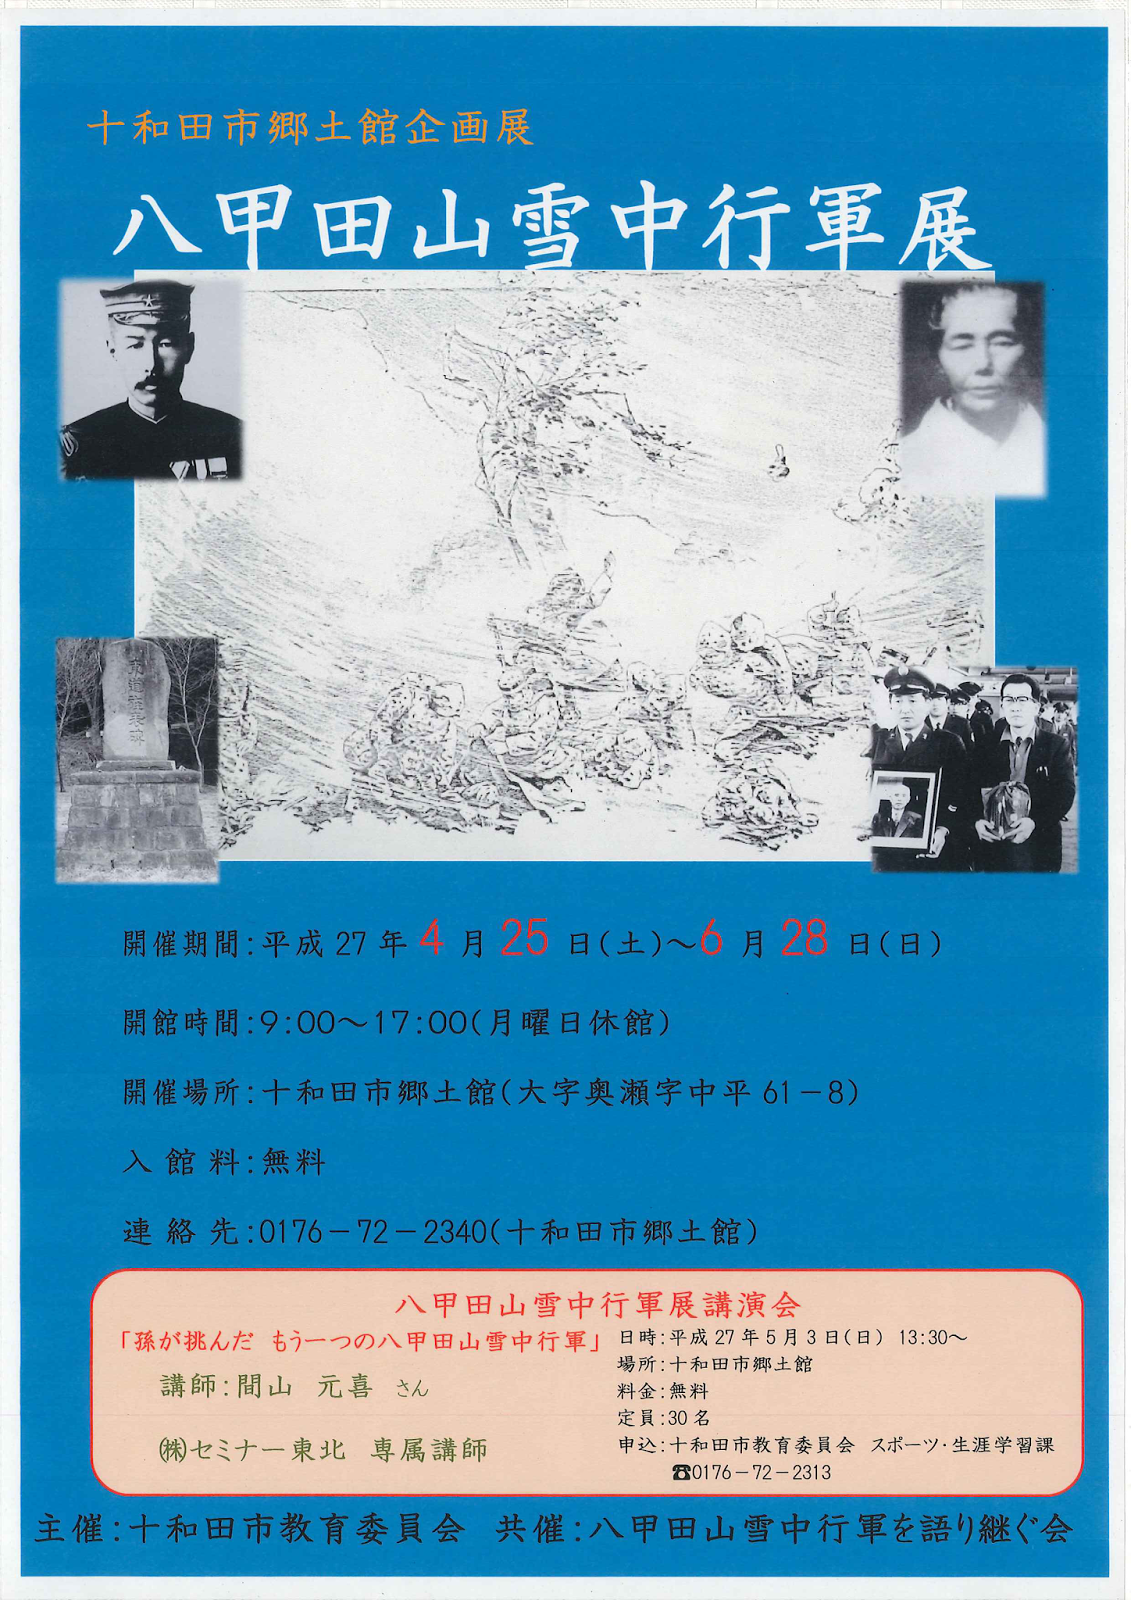 Towada Kyodokan Culture Museum Hakkoda Mountains Snow Marches Exhibit Flyer 十和田市郷土館 八甲田雪中行軍展 チラシ